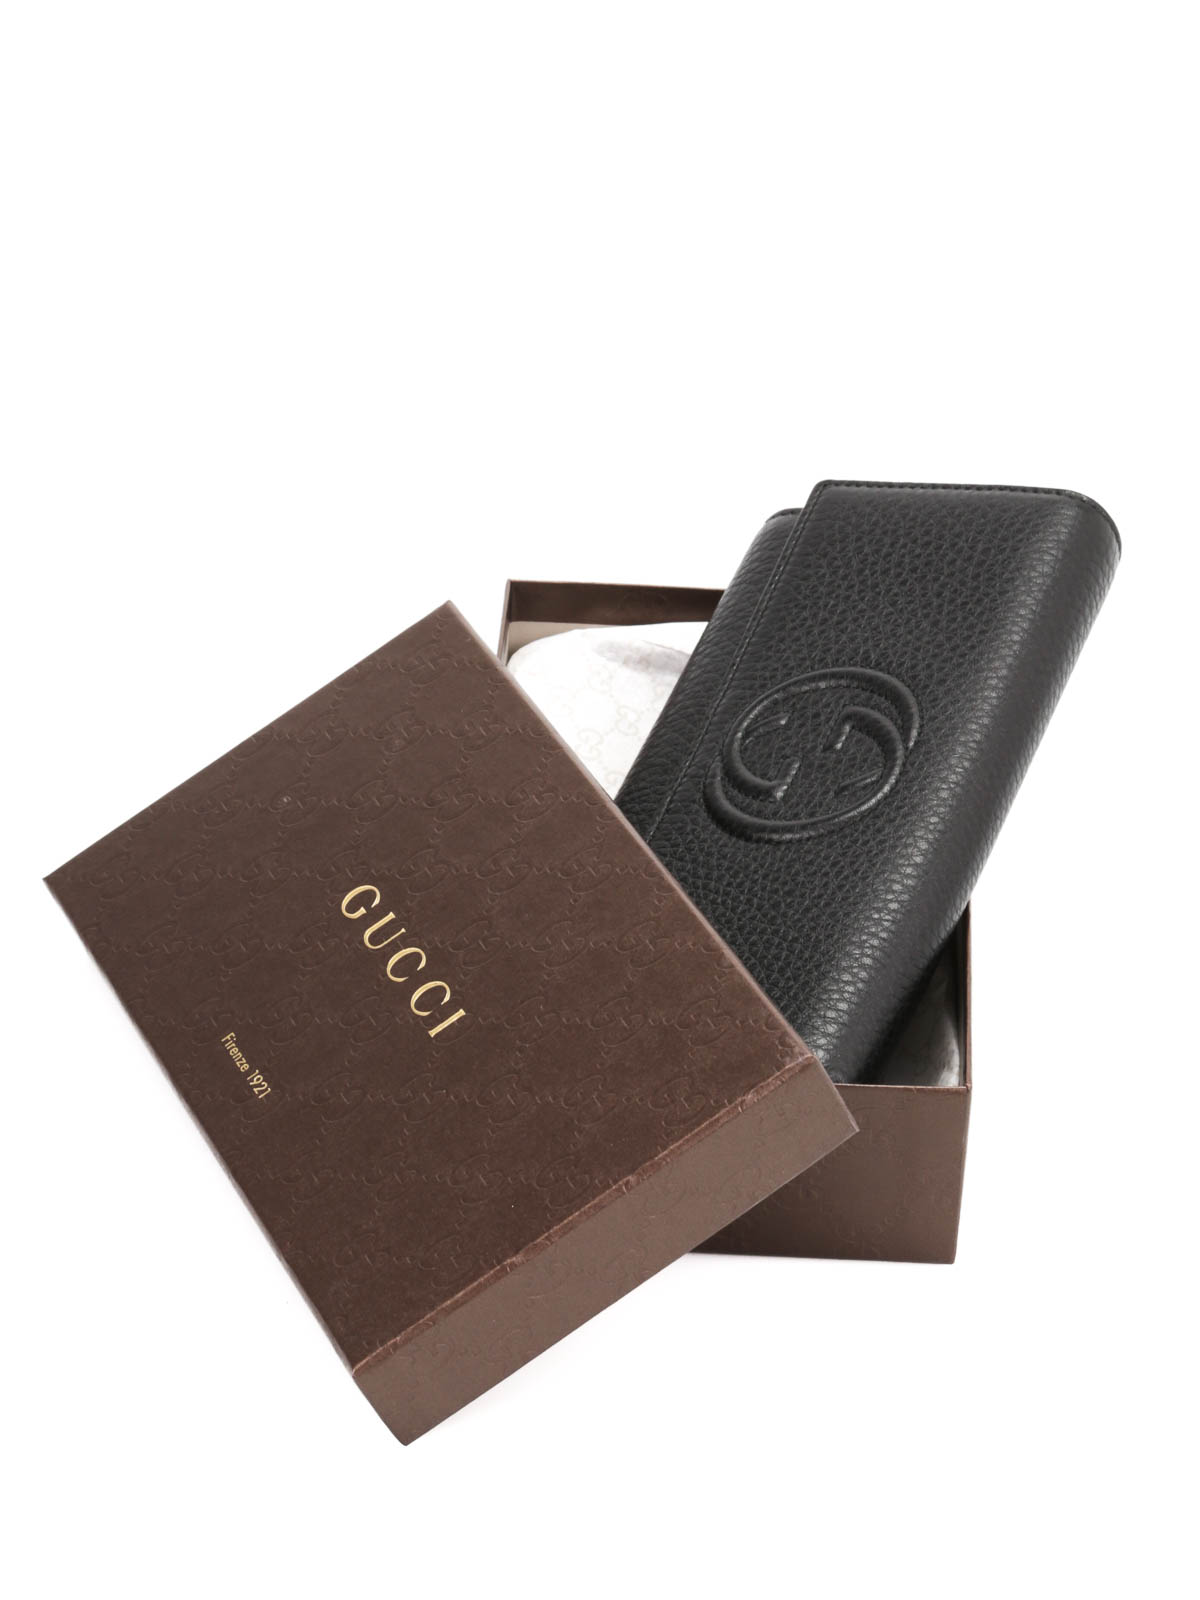 51370bfee37 Gucci - Soho leather continental wallet - wallets   purses - 282414 ...